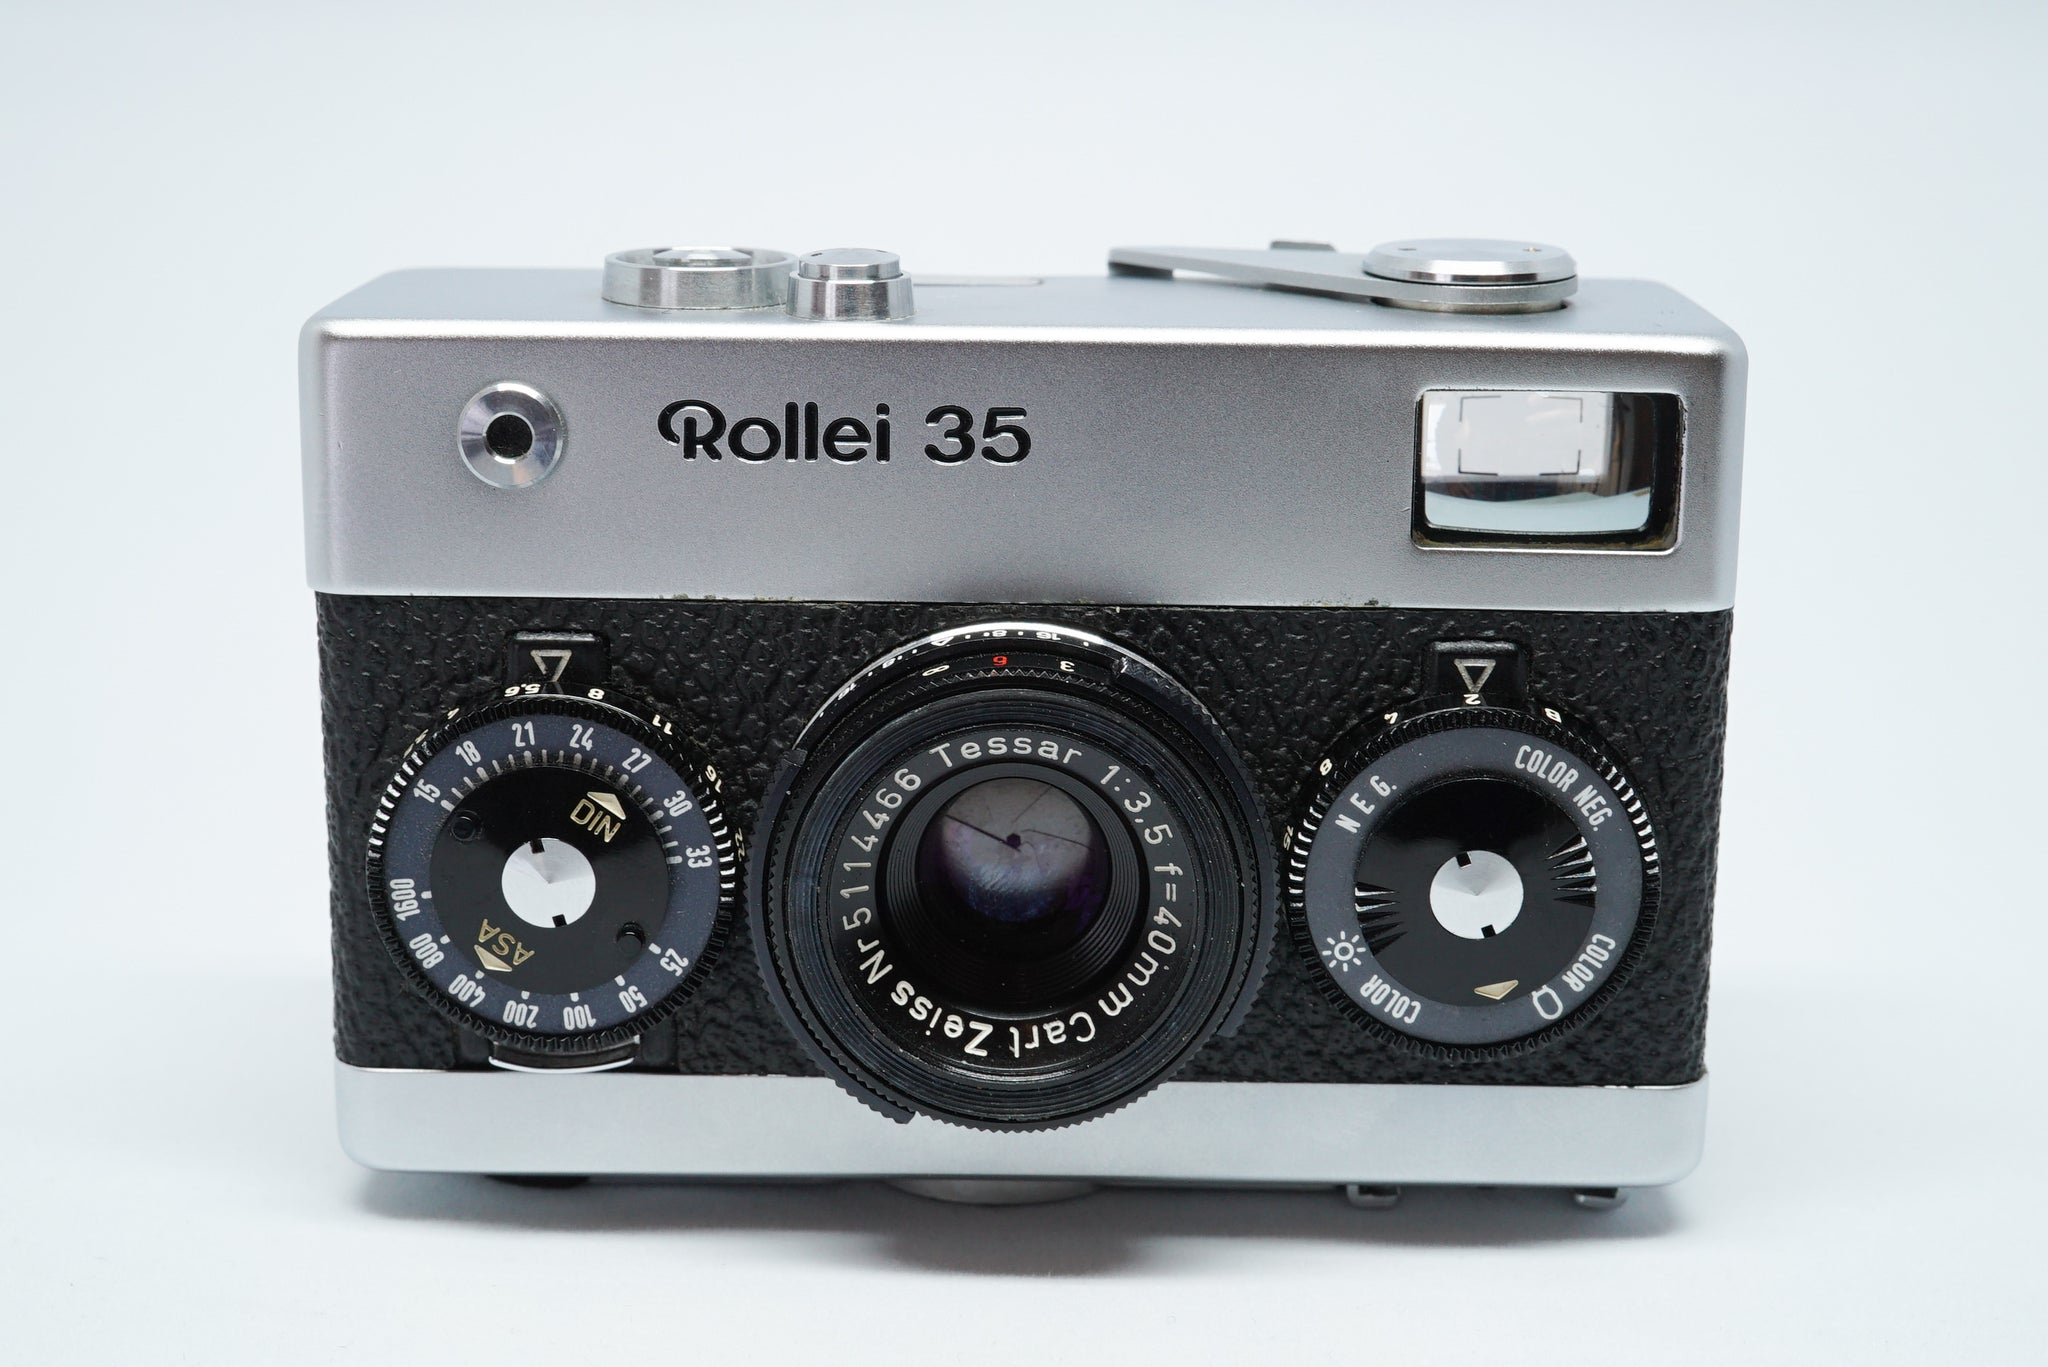 Rollei 35 シルバー Germany (Tessar 40mm f/3.5) 【整備済み】